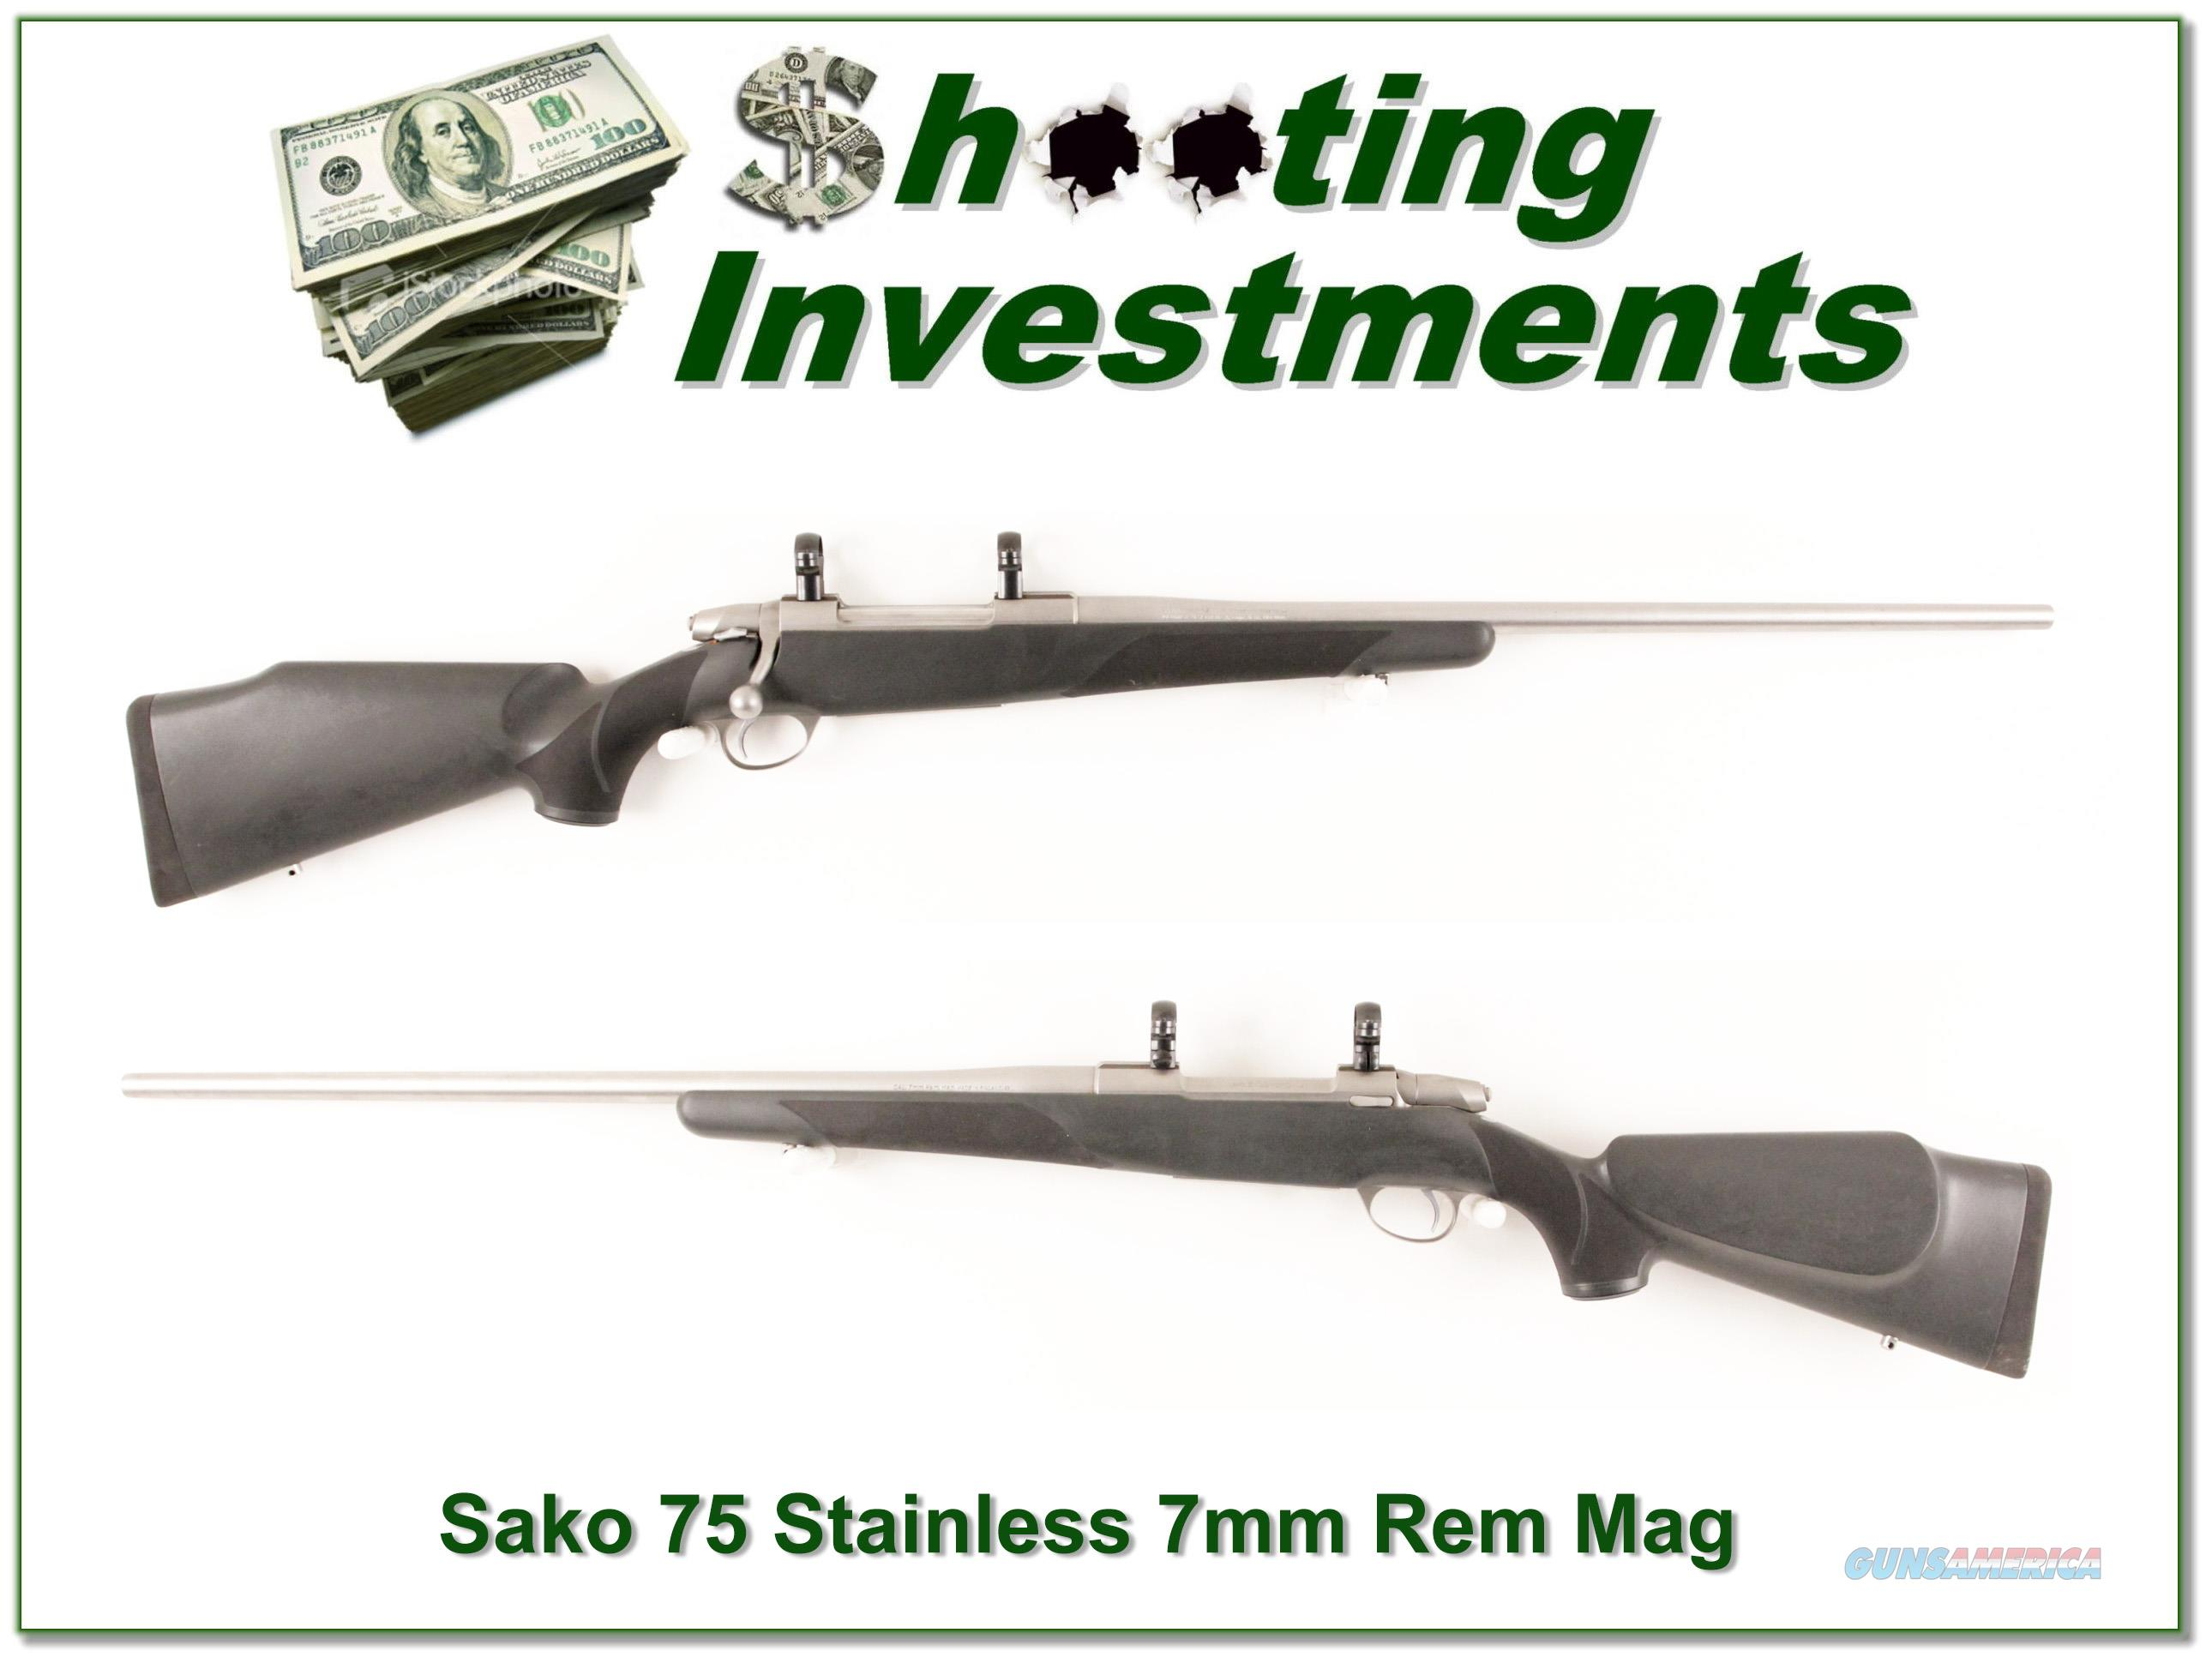 Sako V Stainless Steel 7mm Rem Mag Exc Cond  Guns > Rifles > Sako Rifles > Other Bolt Action